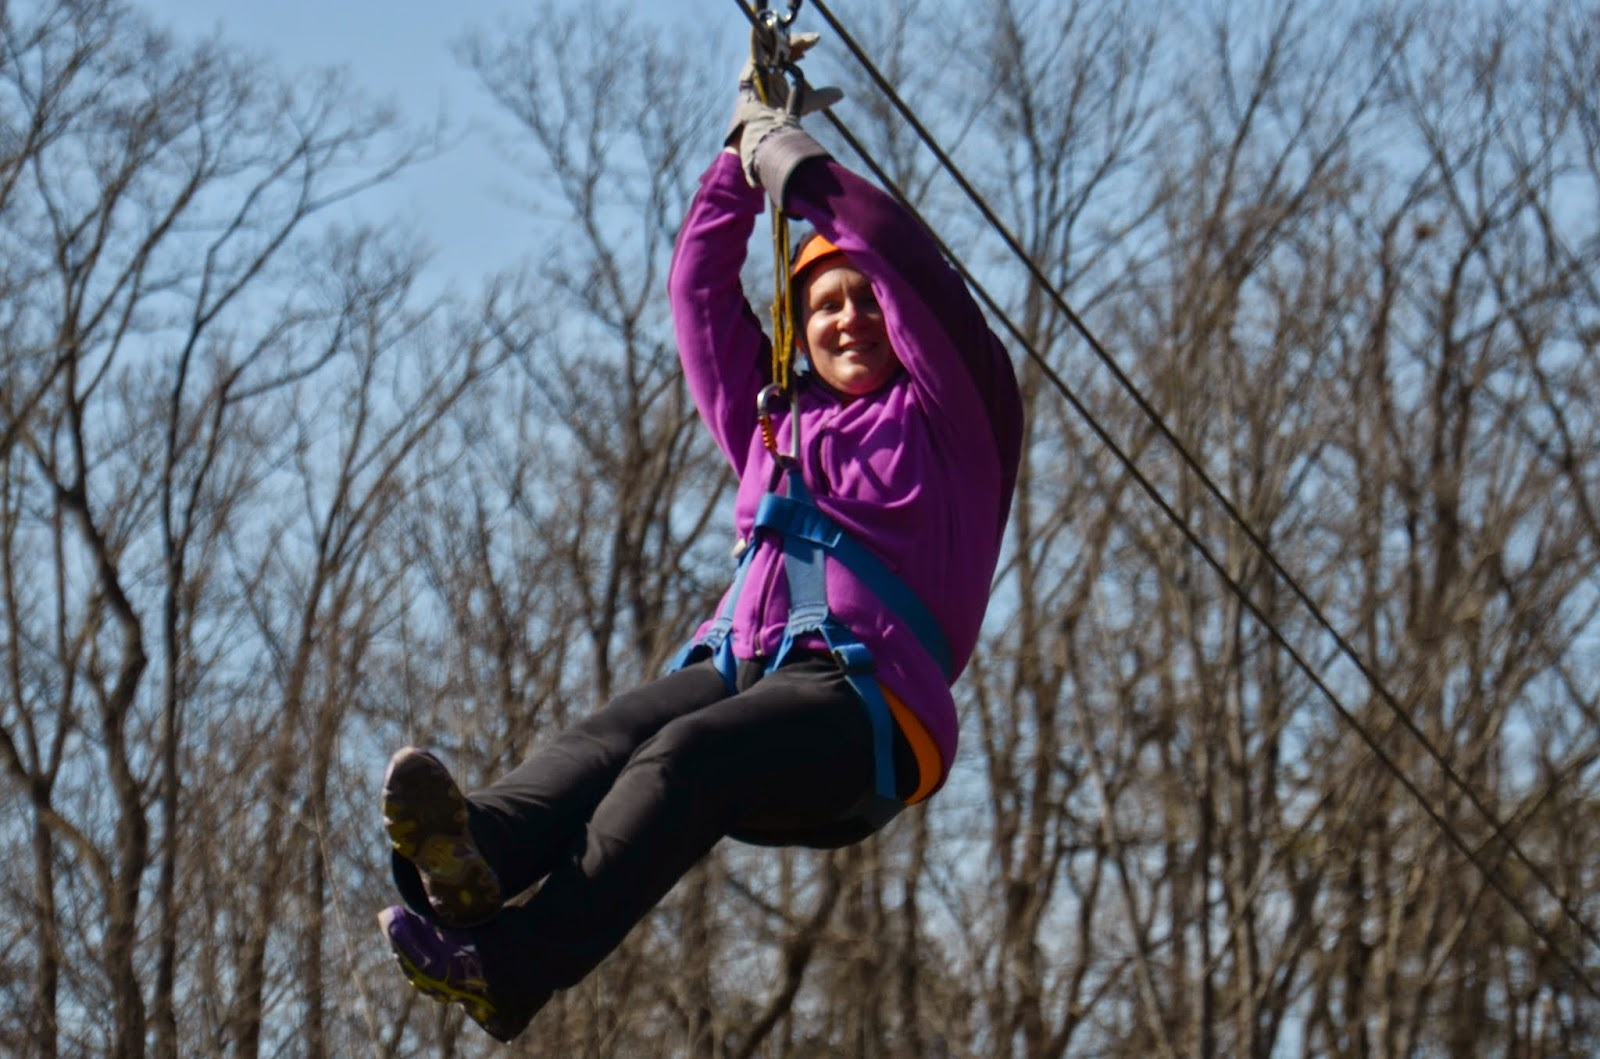 Moms love zipping at Adventure Park